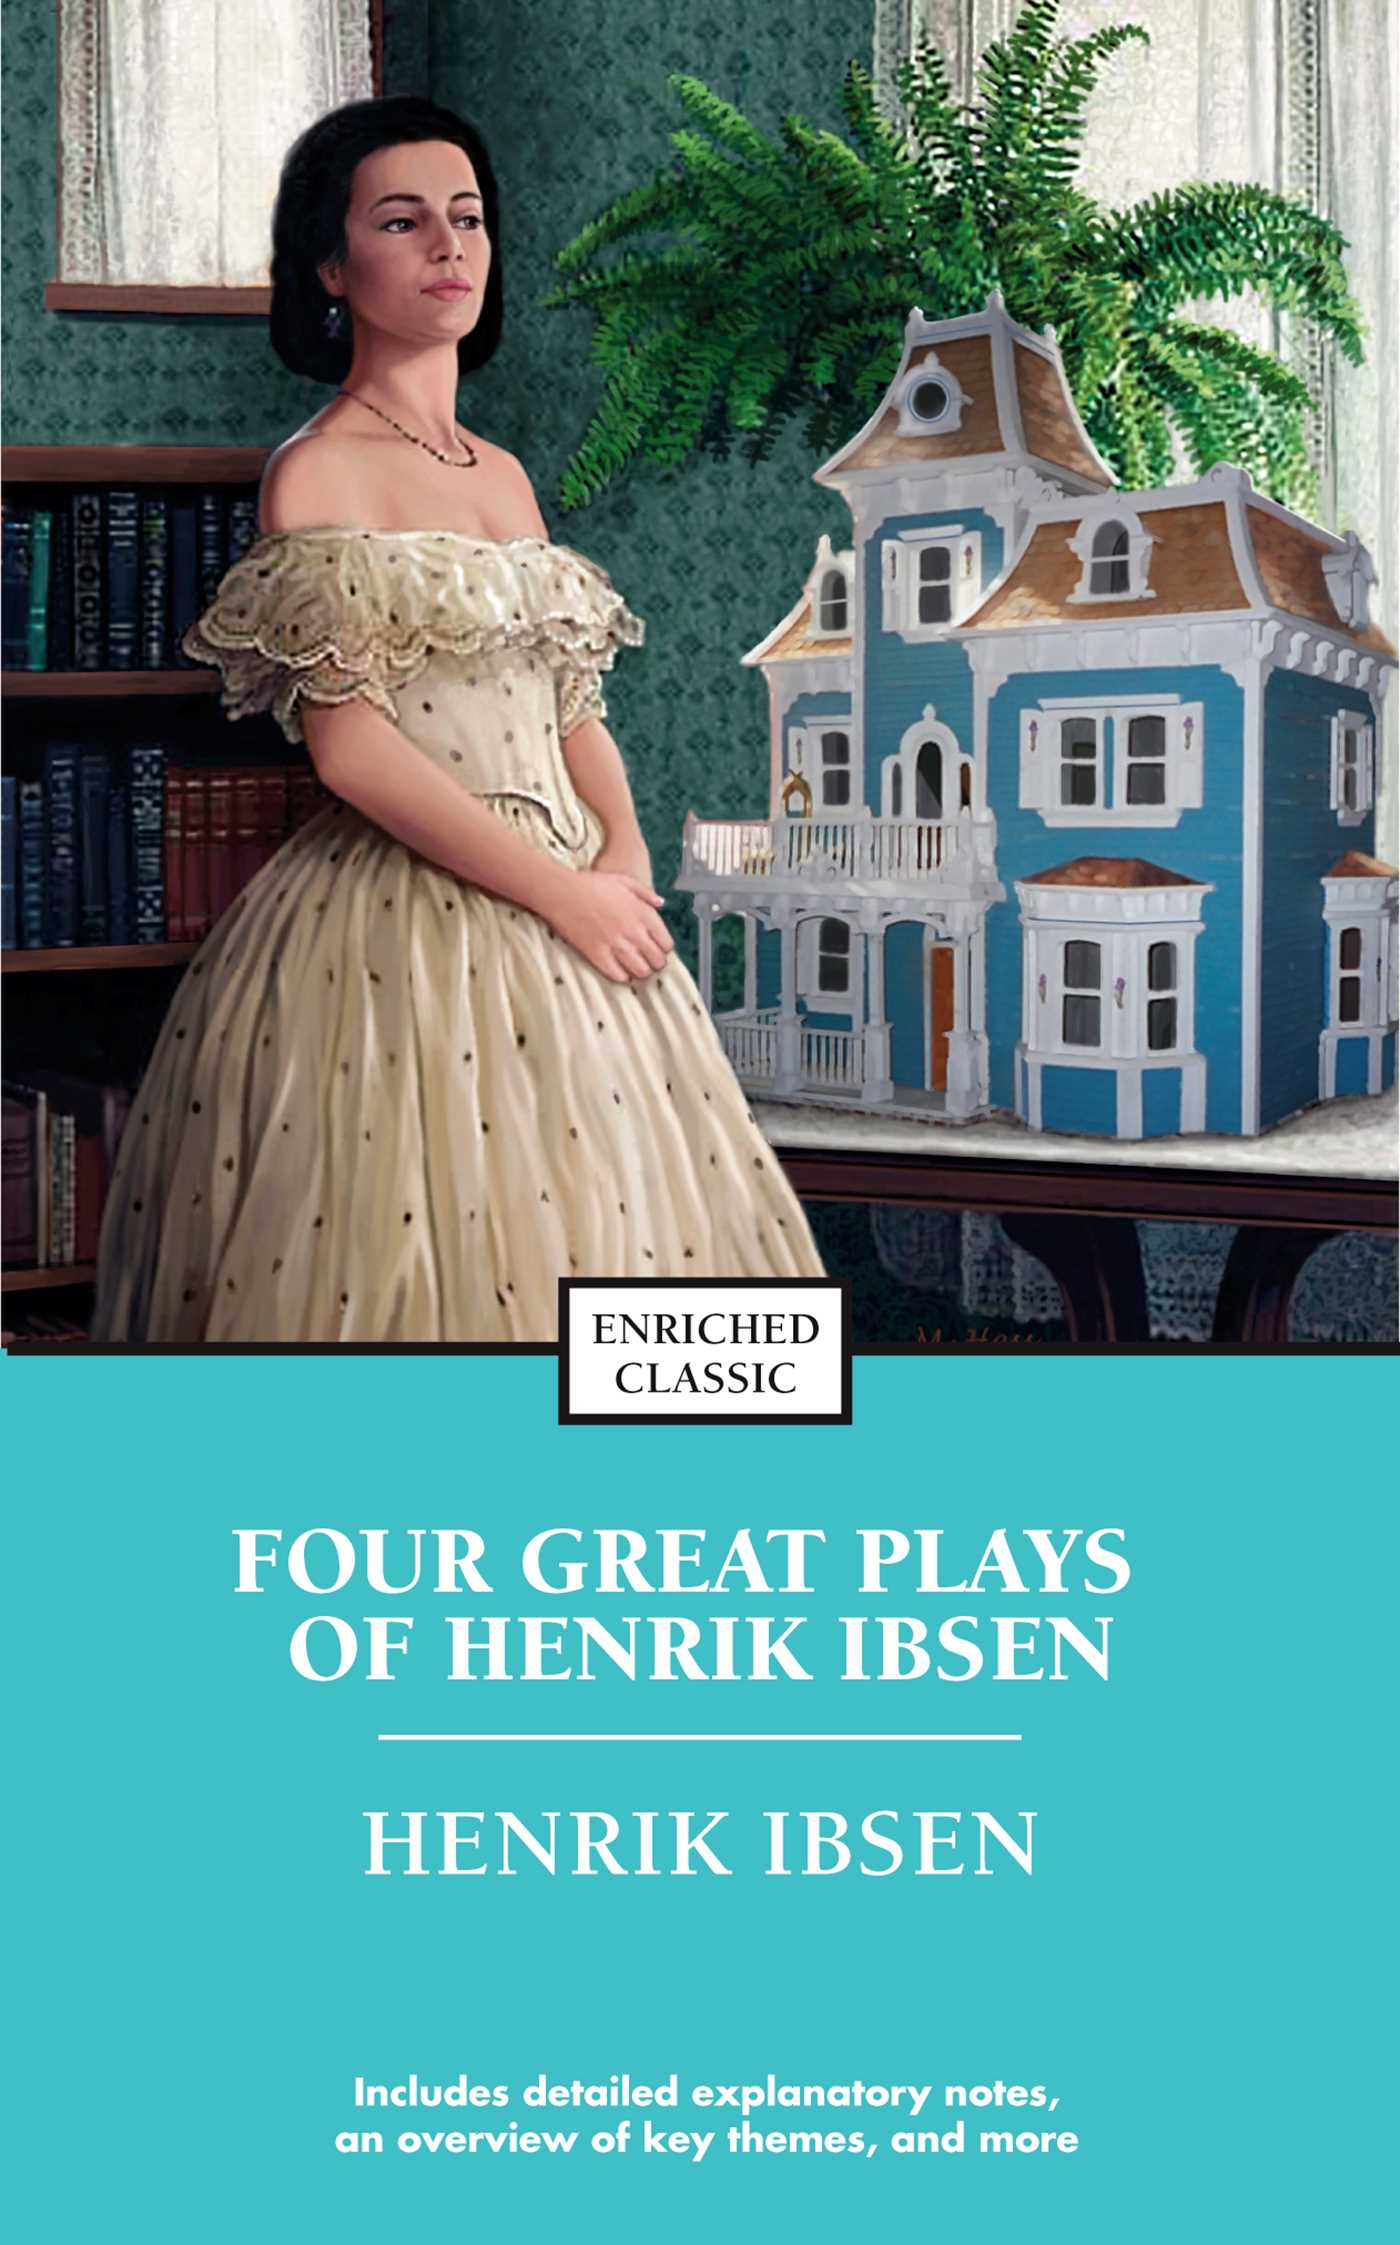 literary analysis of the book a doll house by henrik isben A doll's house by henrik ibsen - hf dmlf - app.